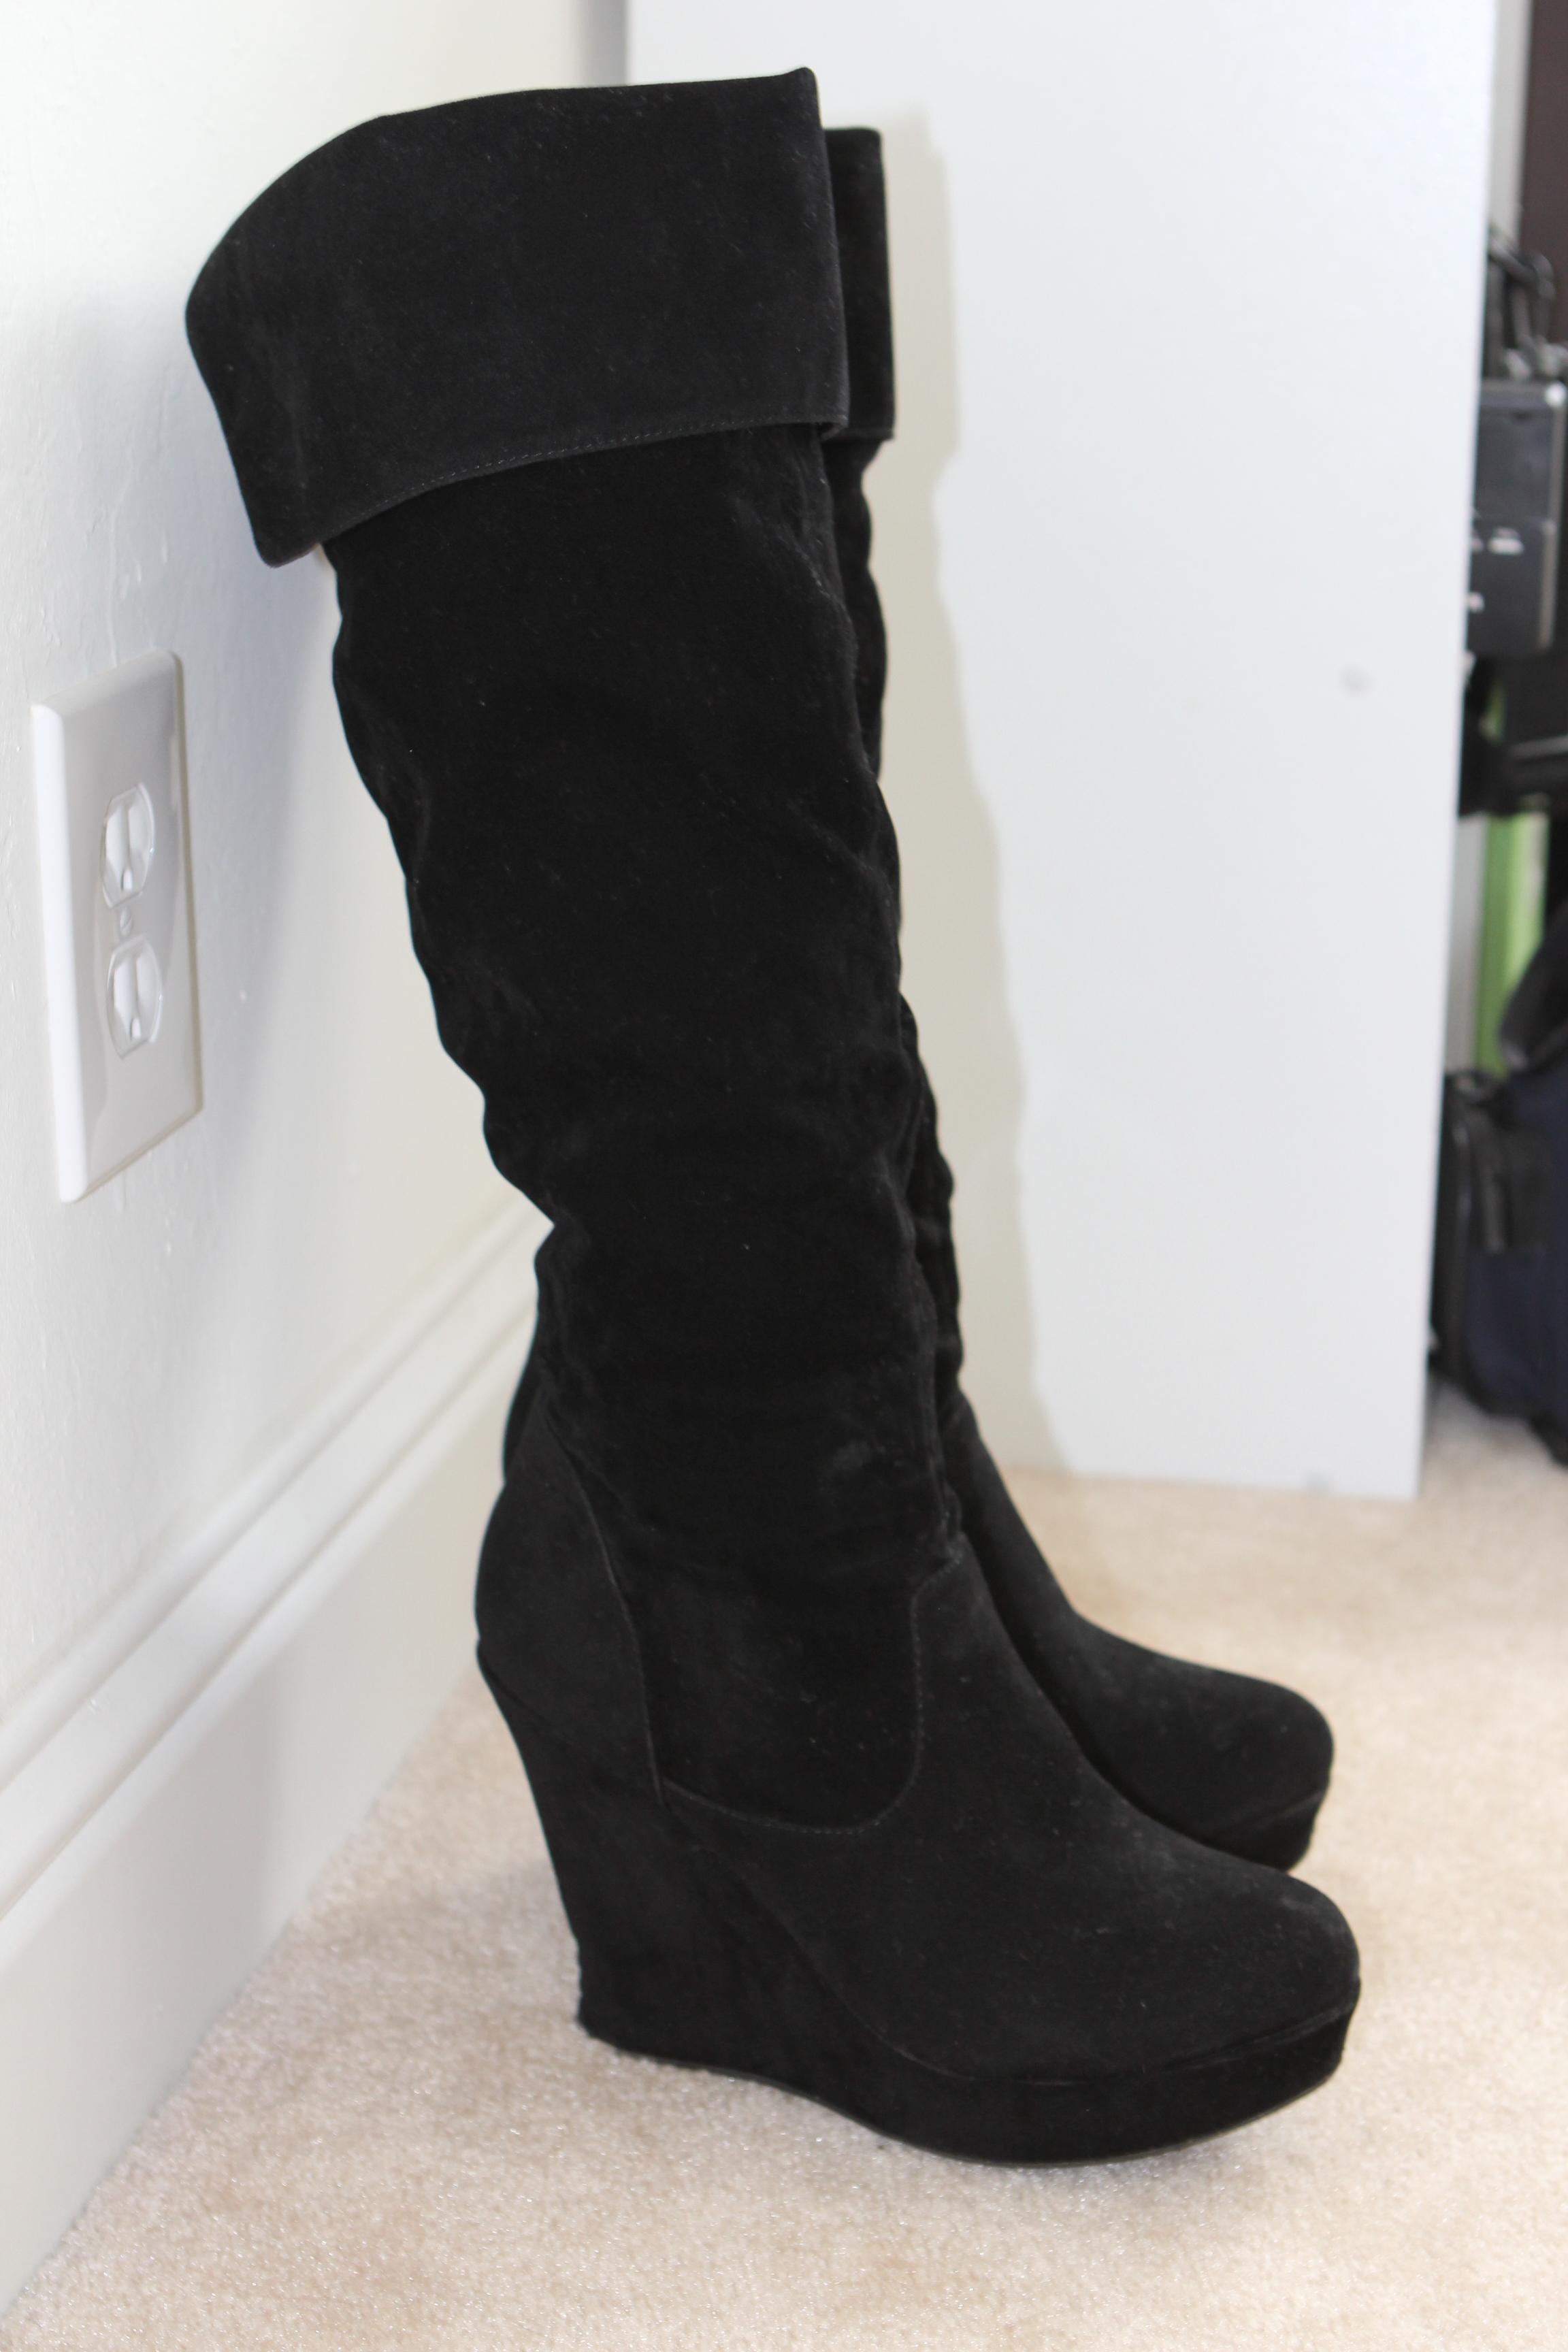 forever 21 wedge knee high faux suede faux leather black